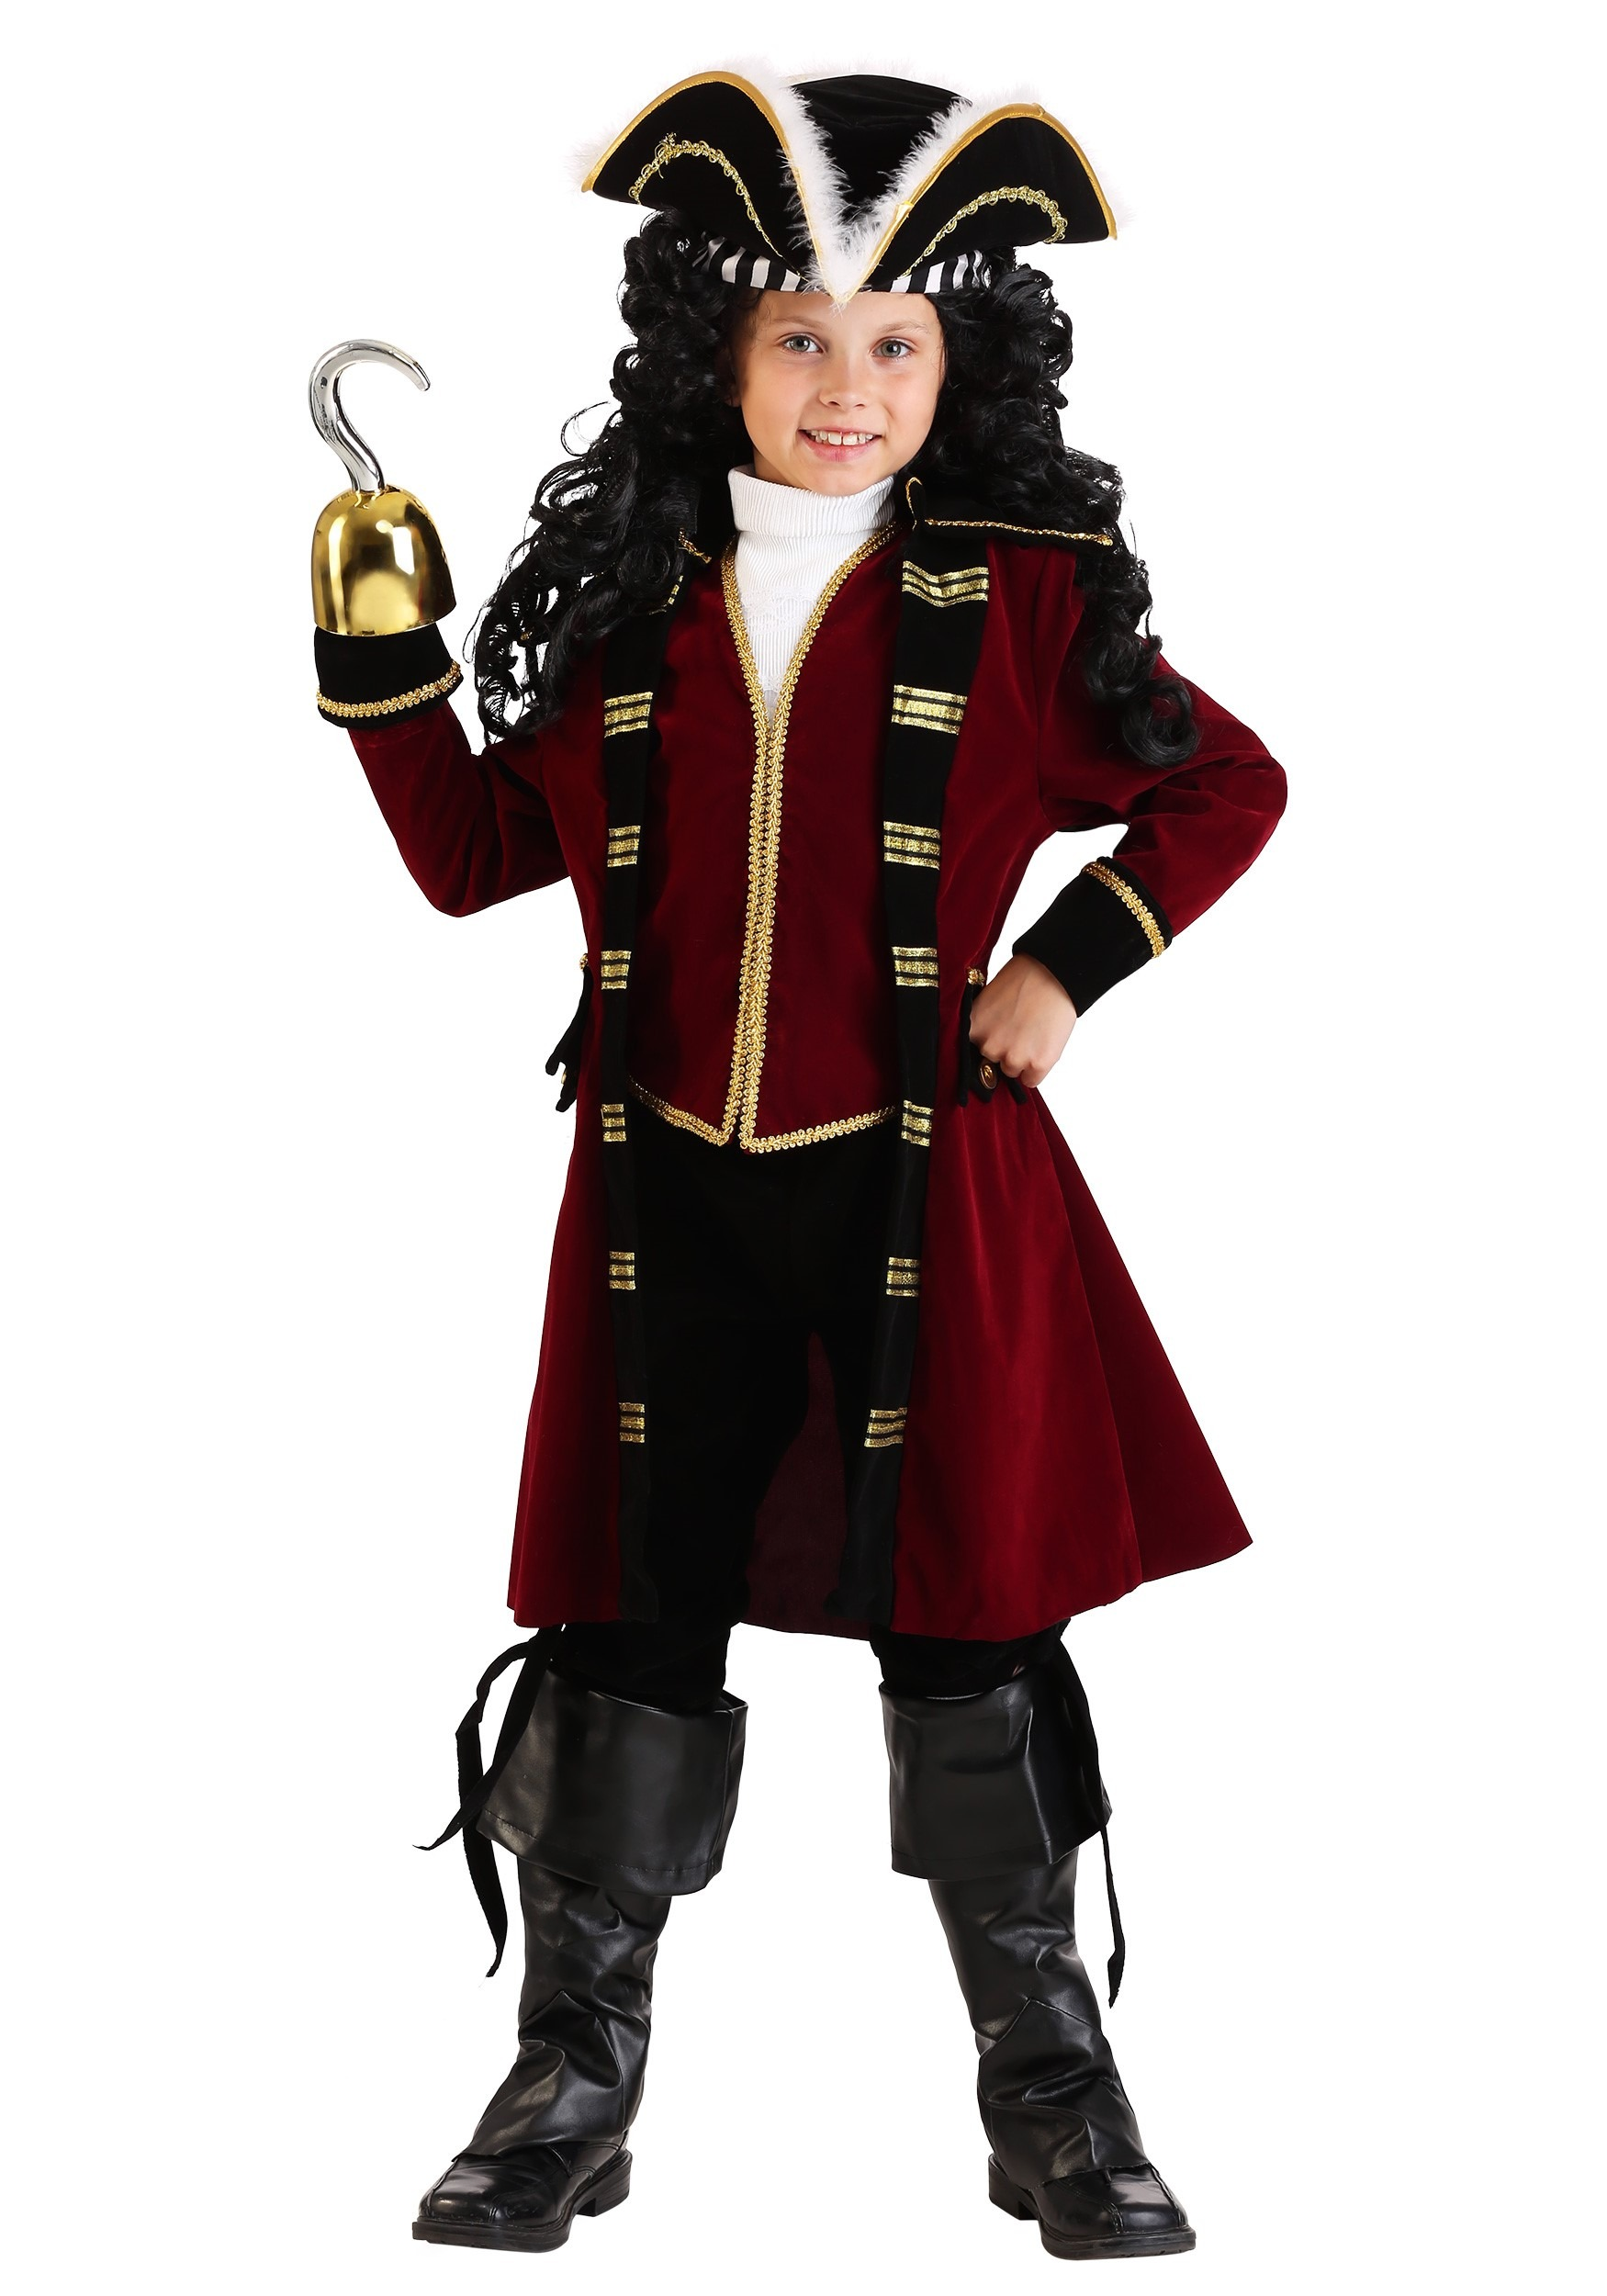 Deluxe Child Captain Hook Costume  sc 1 st  Halloween Costume & Deluxe Child Captain Hook Costume - Pirate Costumes for Kids